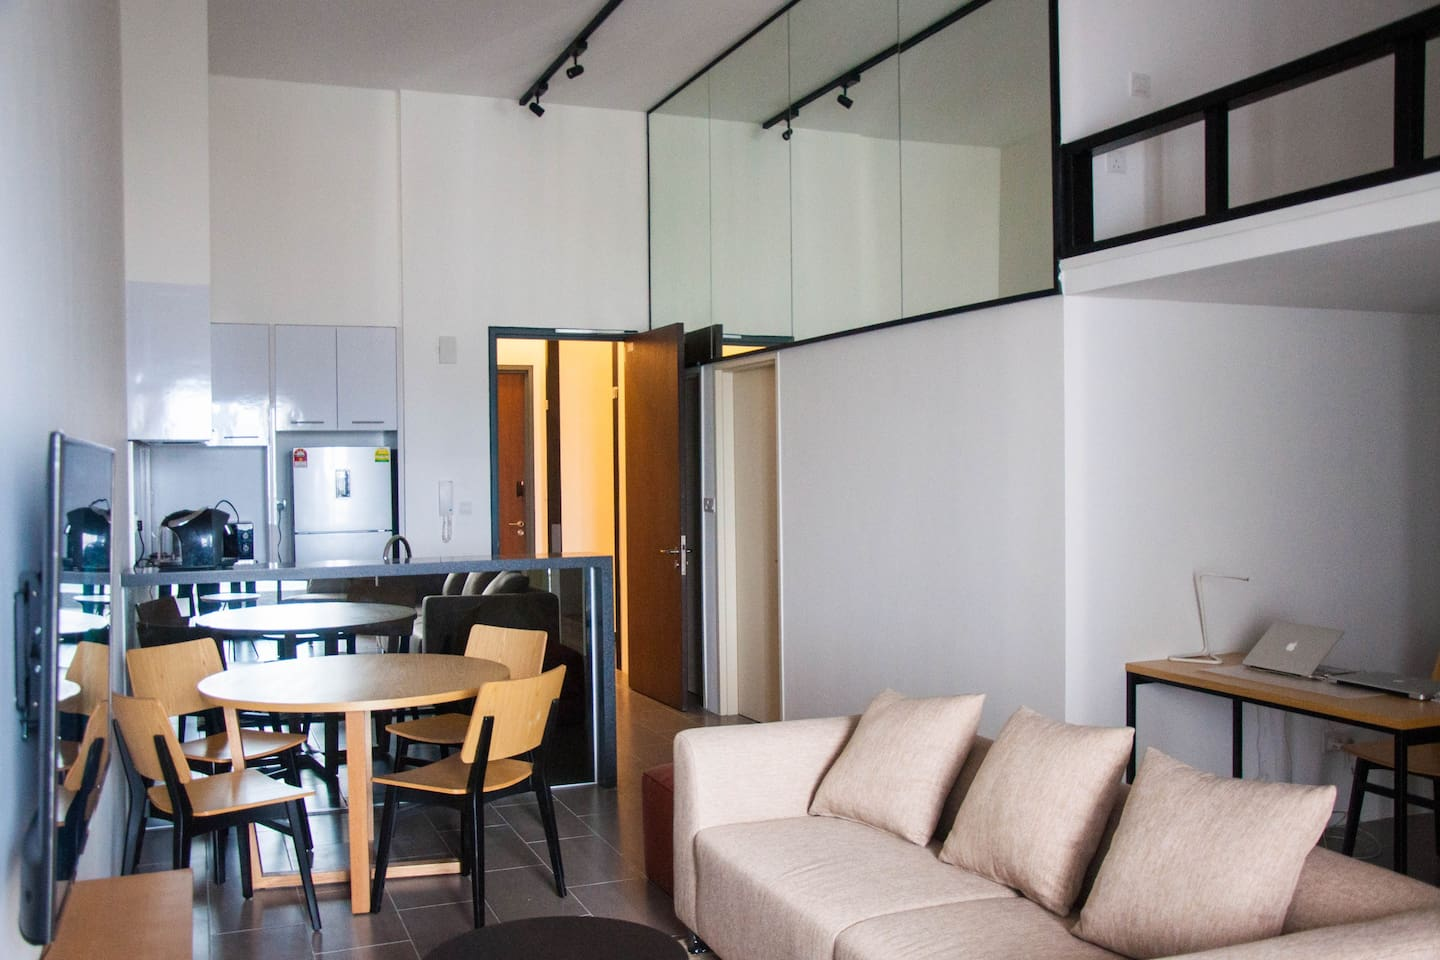 2 Bedrooms Unit with Loft Space Area